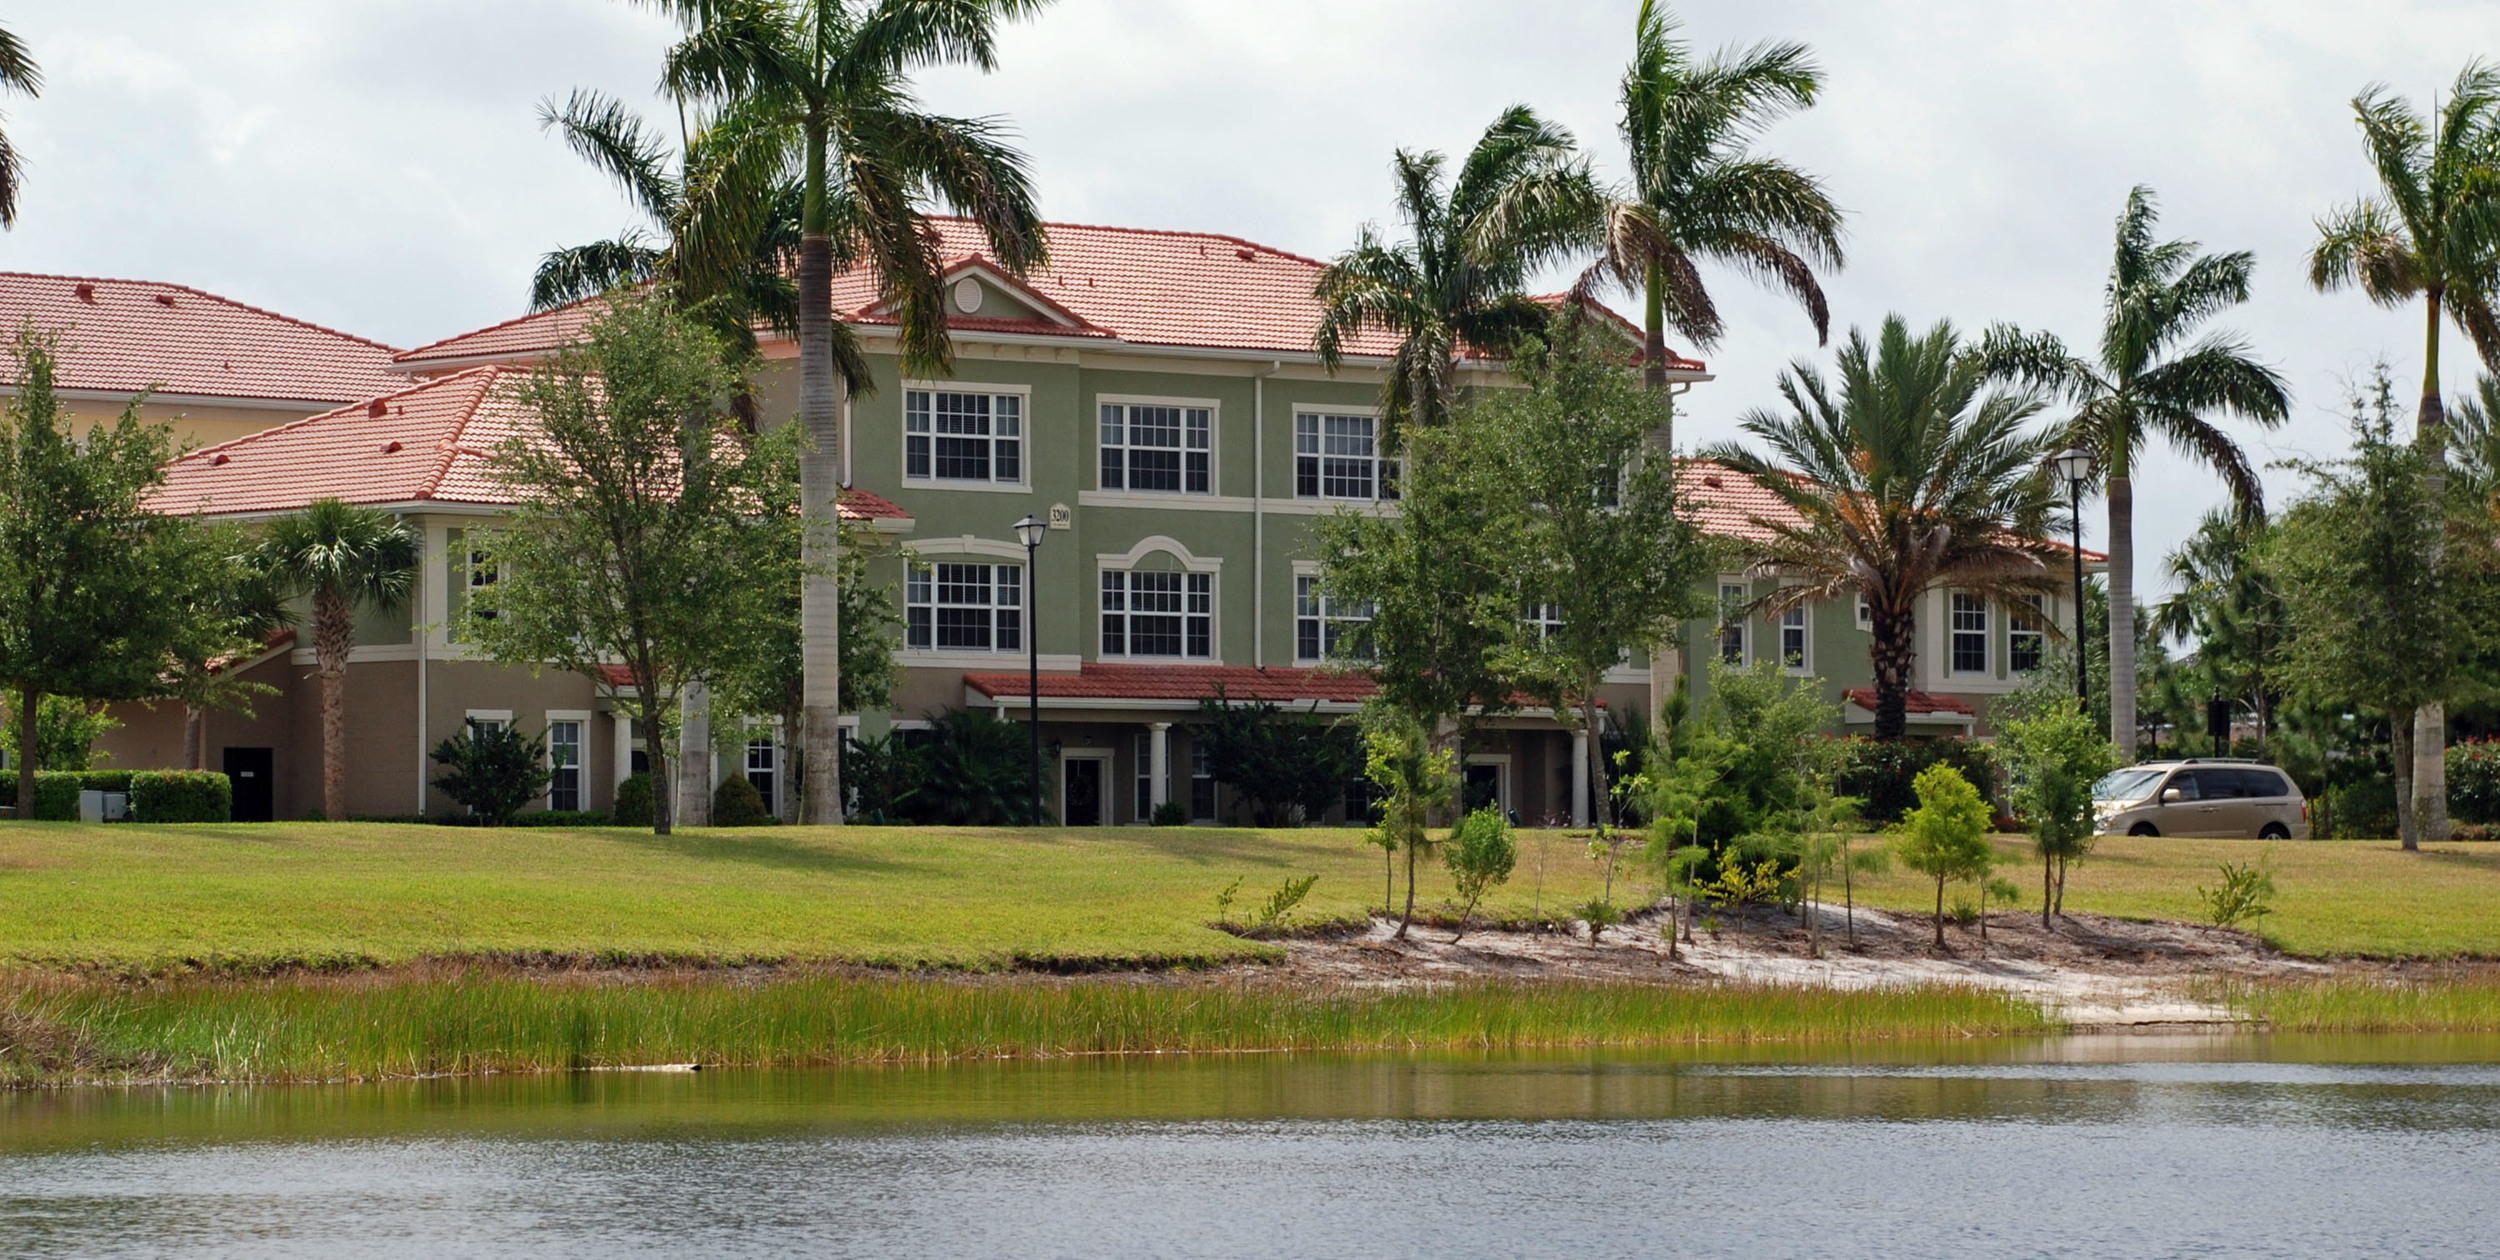 The Gables Floresta Jupiter Florida Multifamily Units Littoral Planting along Lake.jpg